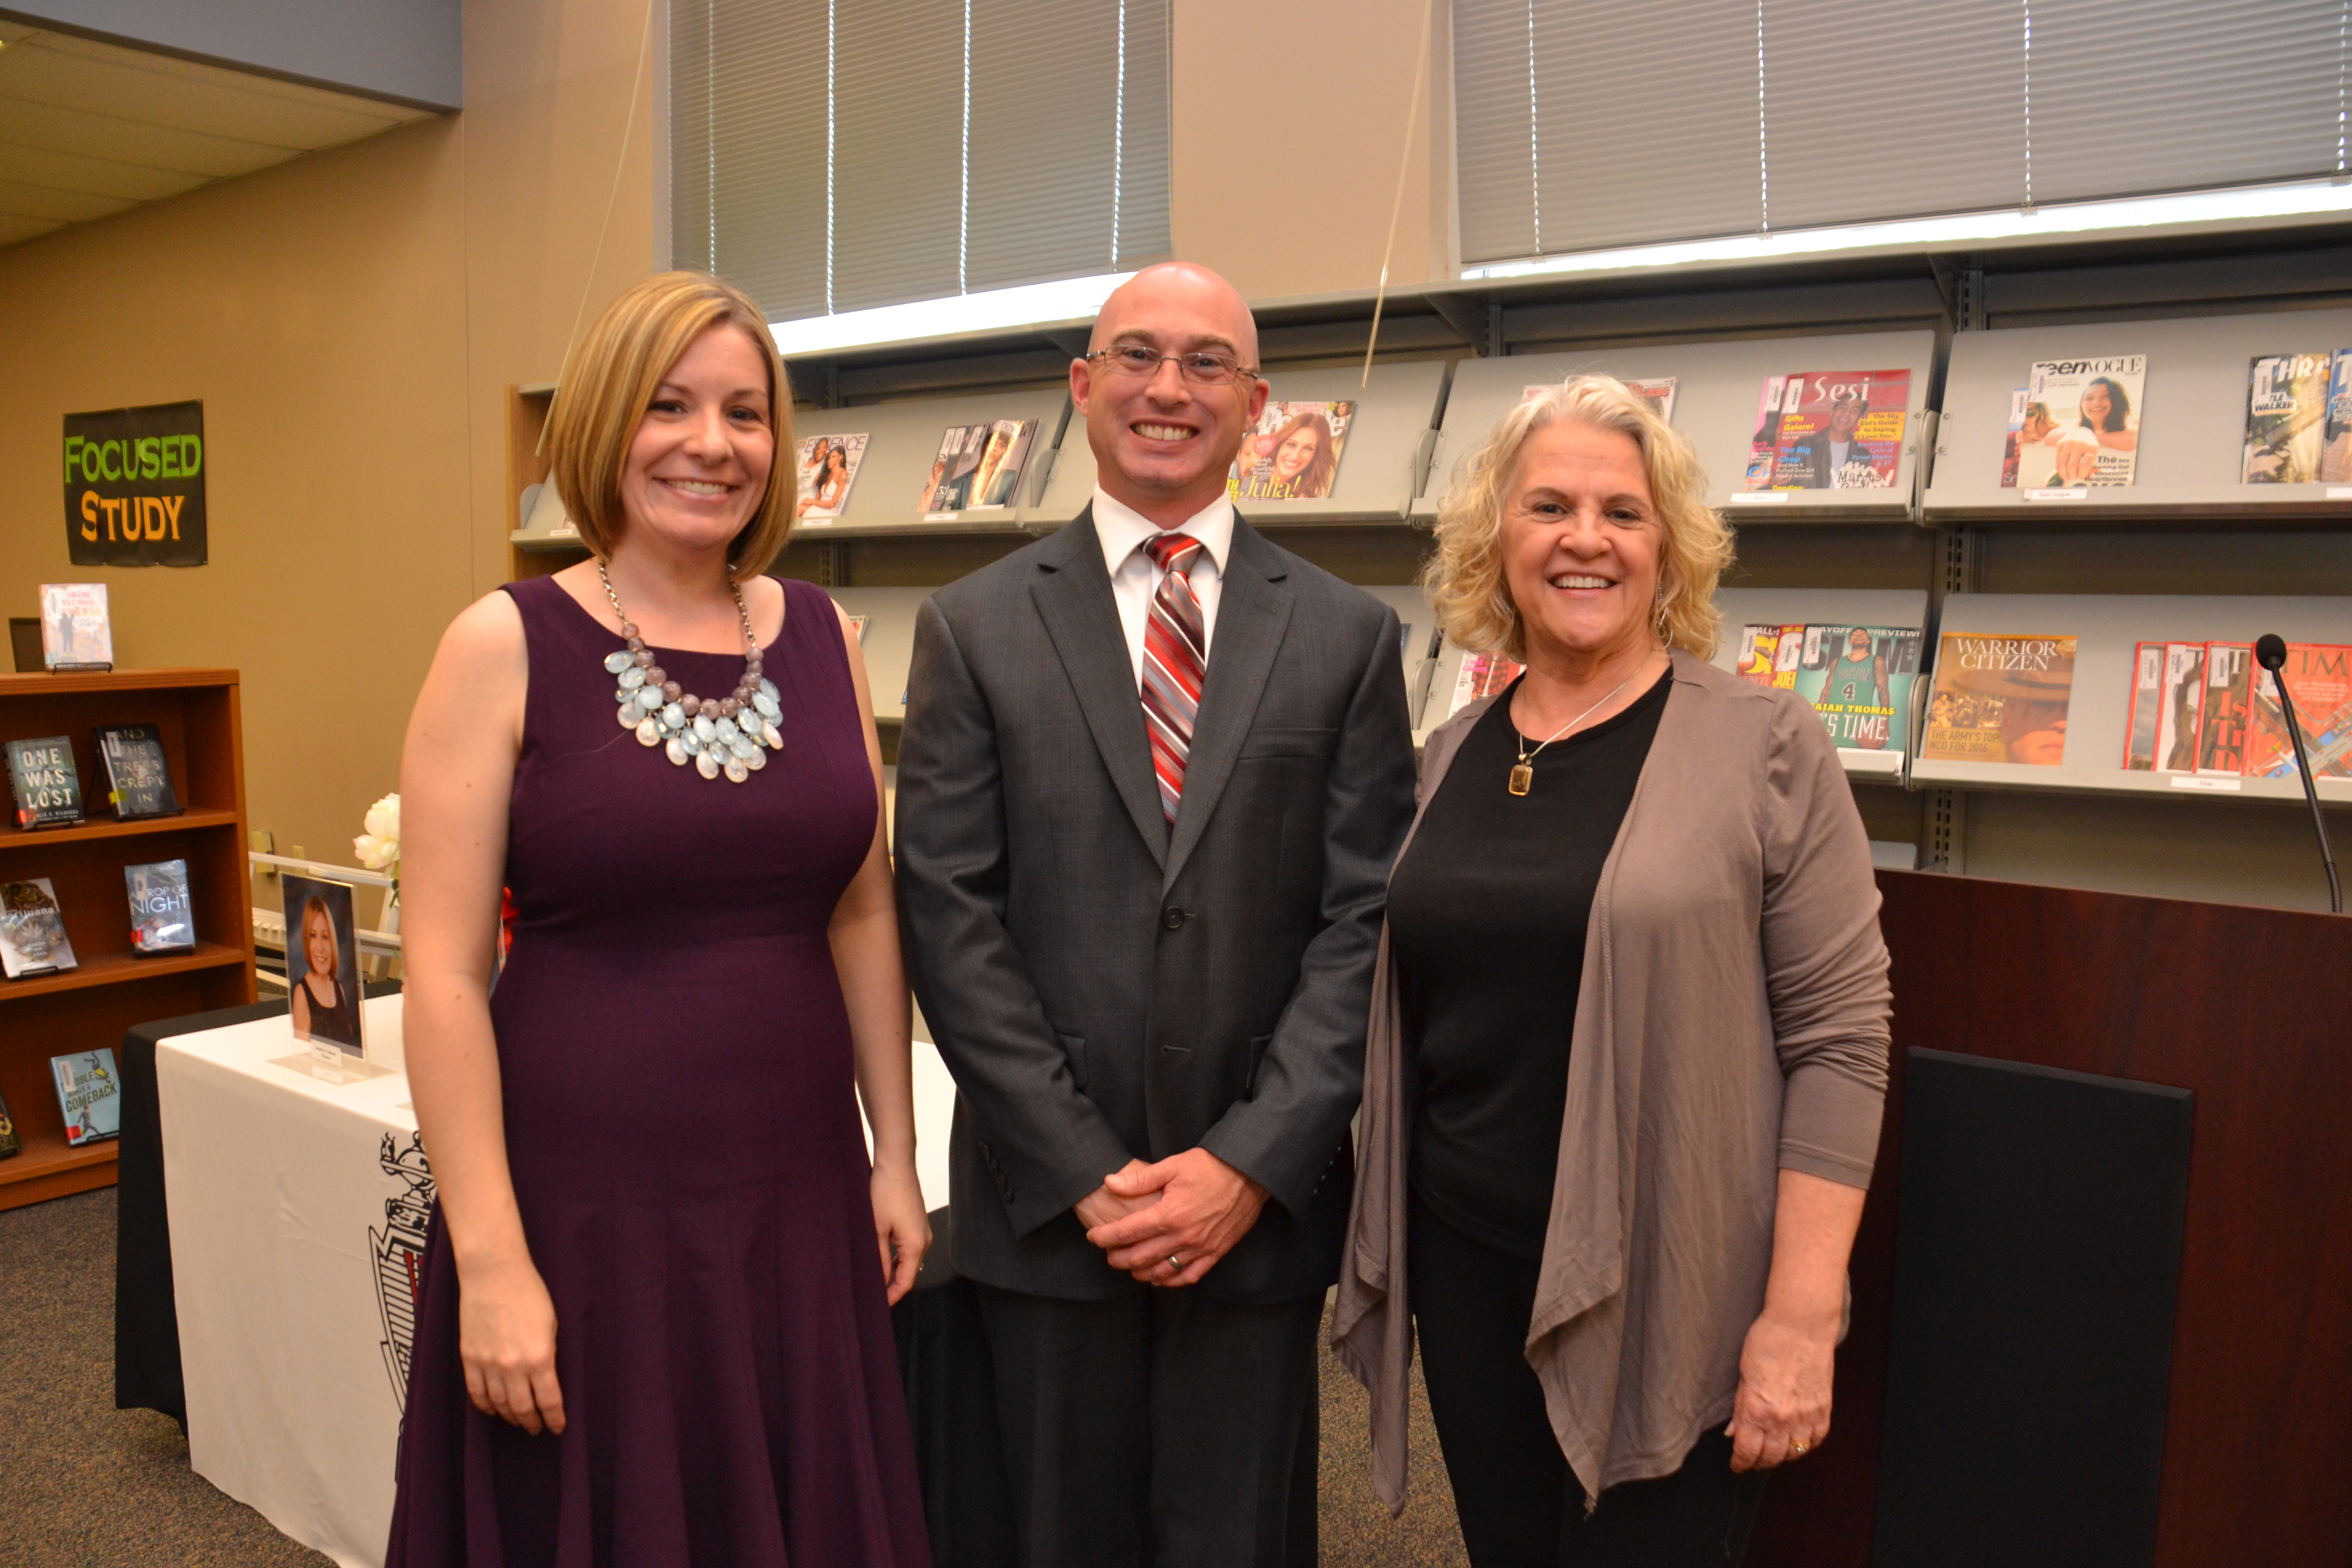 WSHS Alumni Hall of Fame inductees Jennifer Winters, James Gaul and Christine Evenson.